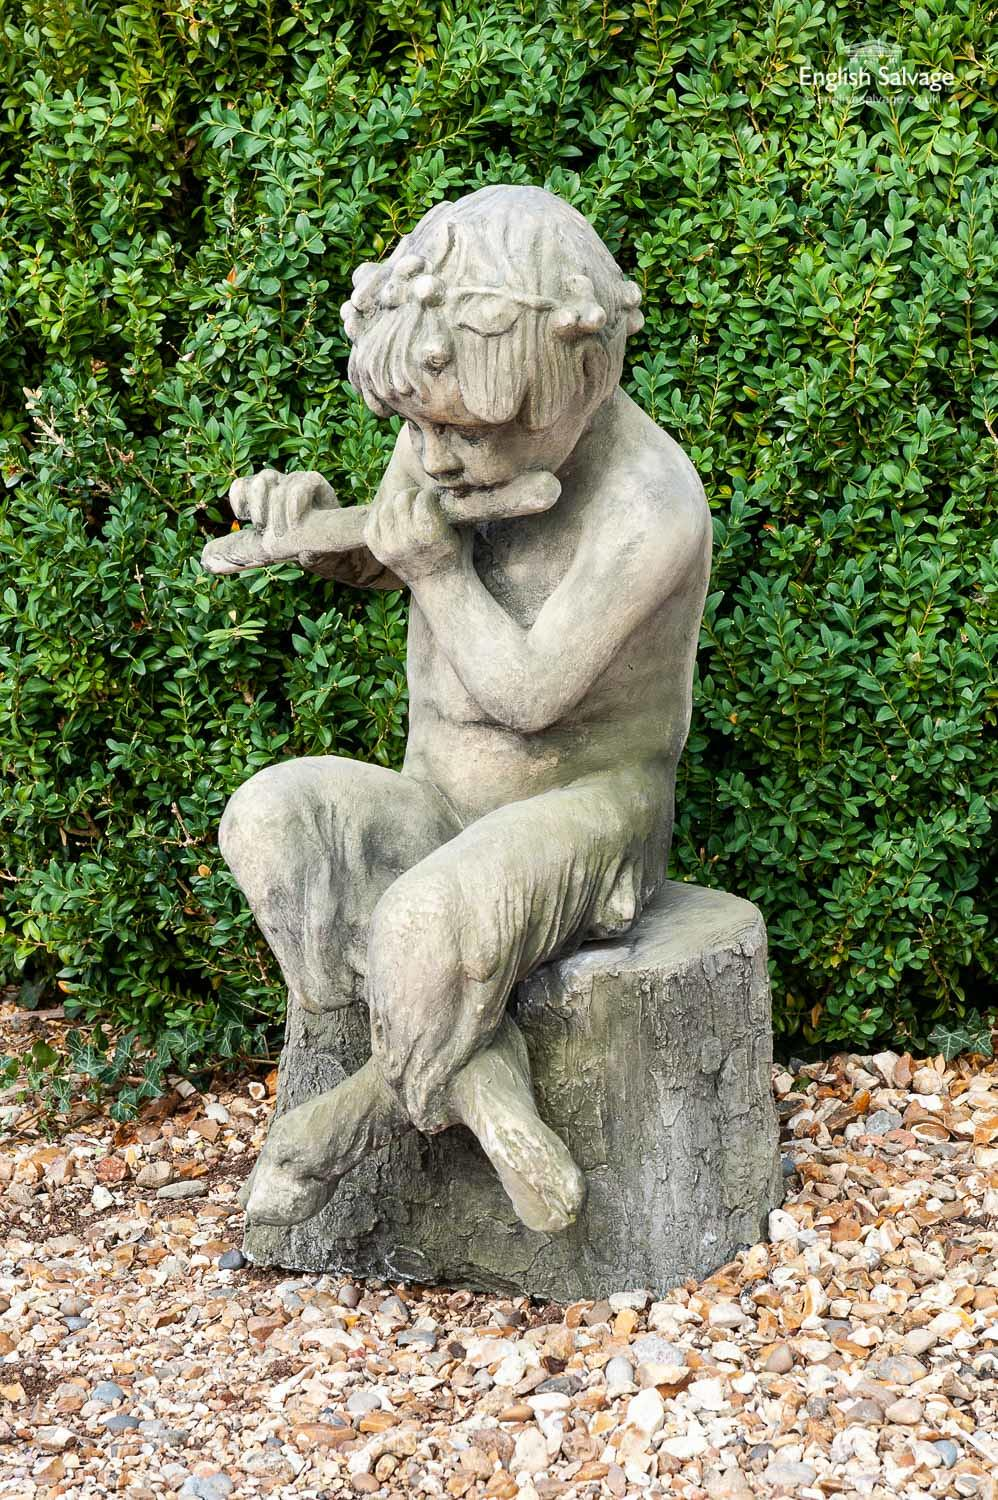 Weathered Look Statue Of Faun Playing A Flute